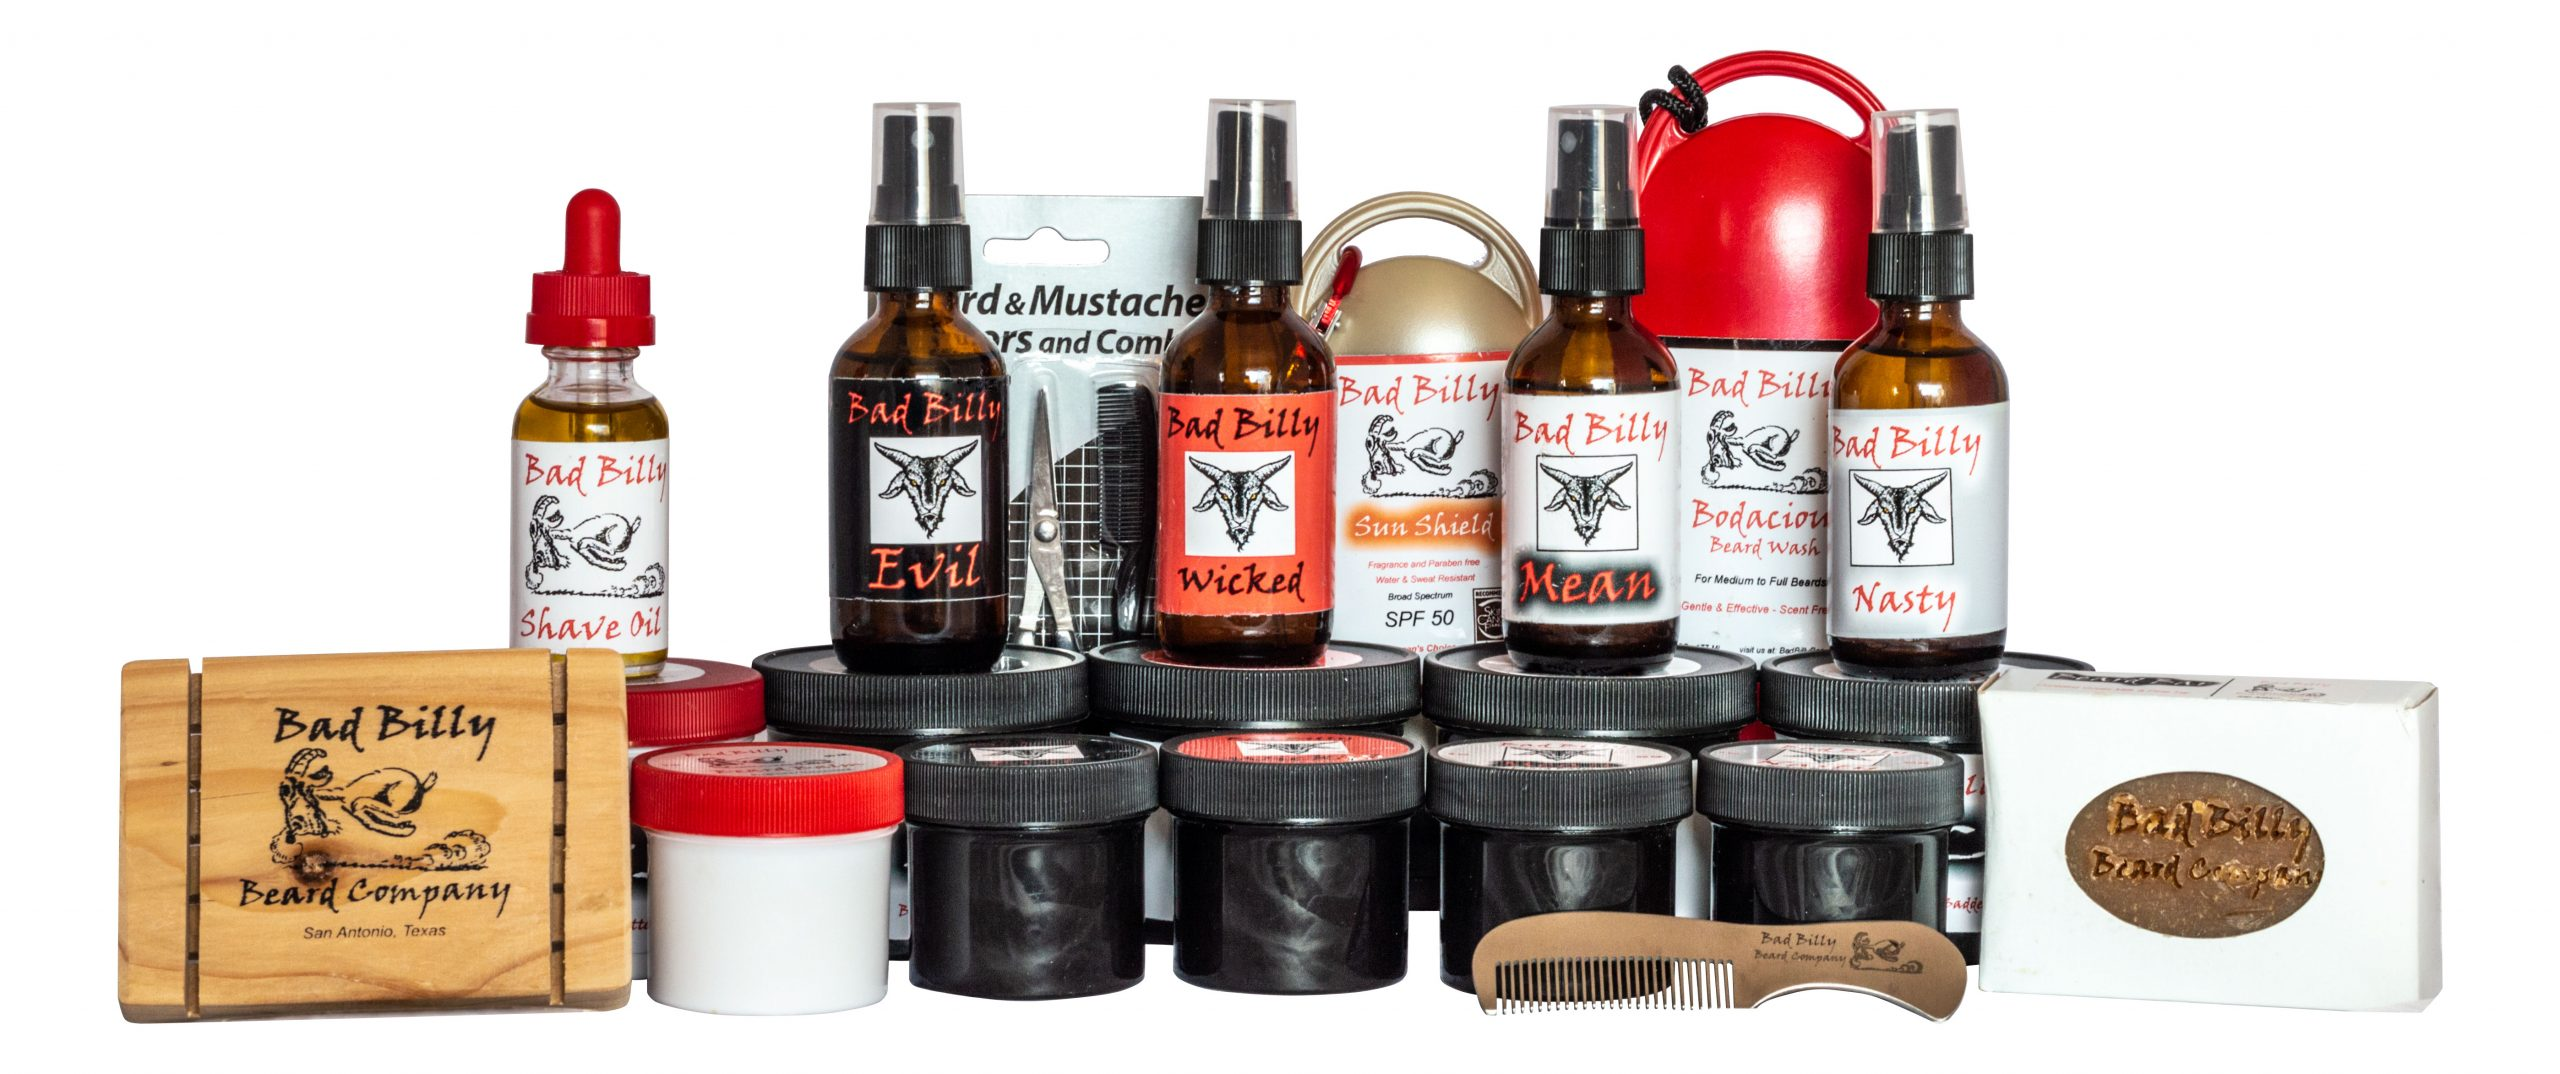 "WELCOME TO BAD BILLY BEARD COMPANY! We are so happy that you've found us! Here are the most affordable beard care products on the planet. Designed for guys with goatees, short beards, stubble, and scruff! We've searched the world to get the best prices for the best stuff! What else do you need when you've got the basics covered?! When I first started my goatee, I looked around for something to stop the itch! Every guy who has ever grown a beard has run into this problem, and I was no exception. Looking at the men's counter at the local drug, big box, and grocery stores turned up nothing at all! I started researching and the result has now become Bad Billy Beard Company. Almost all the beard care products found on the internet are pricey. For the fellows that have long, full beards There's just nothing for us who like the neat look of a goatee or short beard, and there's even less for the short, stubble or ""scruff' look that so many like to wear…WELL NOW THERE IS! We ARE your affordable source for face and beard care and we have a great product line-up that should take care of the itch, help you with a clean and precise shave, and make your beard soft and manageable. We're a home-based business deep in the heart of Texas and our goal is to give you beard care products found nowhere else at prices that make sense. Check us out and give us a try!"